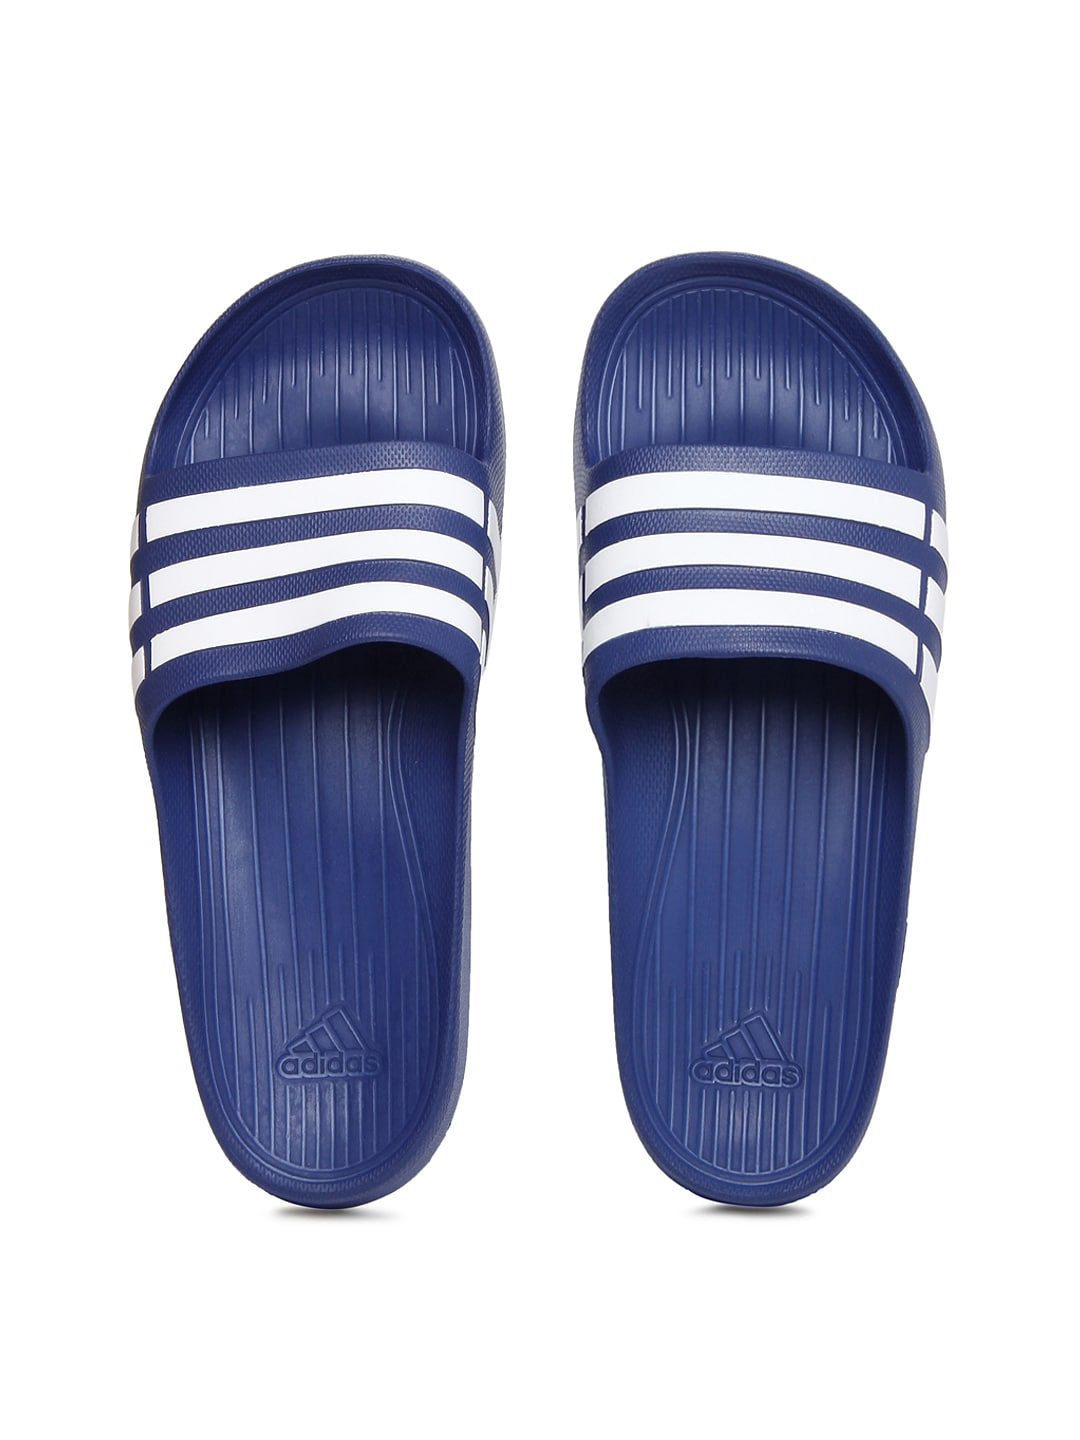 0c095a93a152b Adidas Flip Flops Tracksuits Wristbands Socks - Buy Adidas Flip Flops  Tracksuits Wristbands Socks online in India